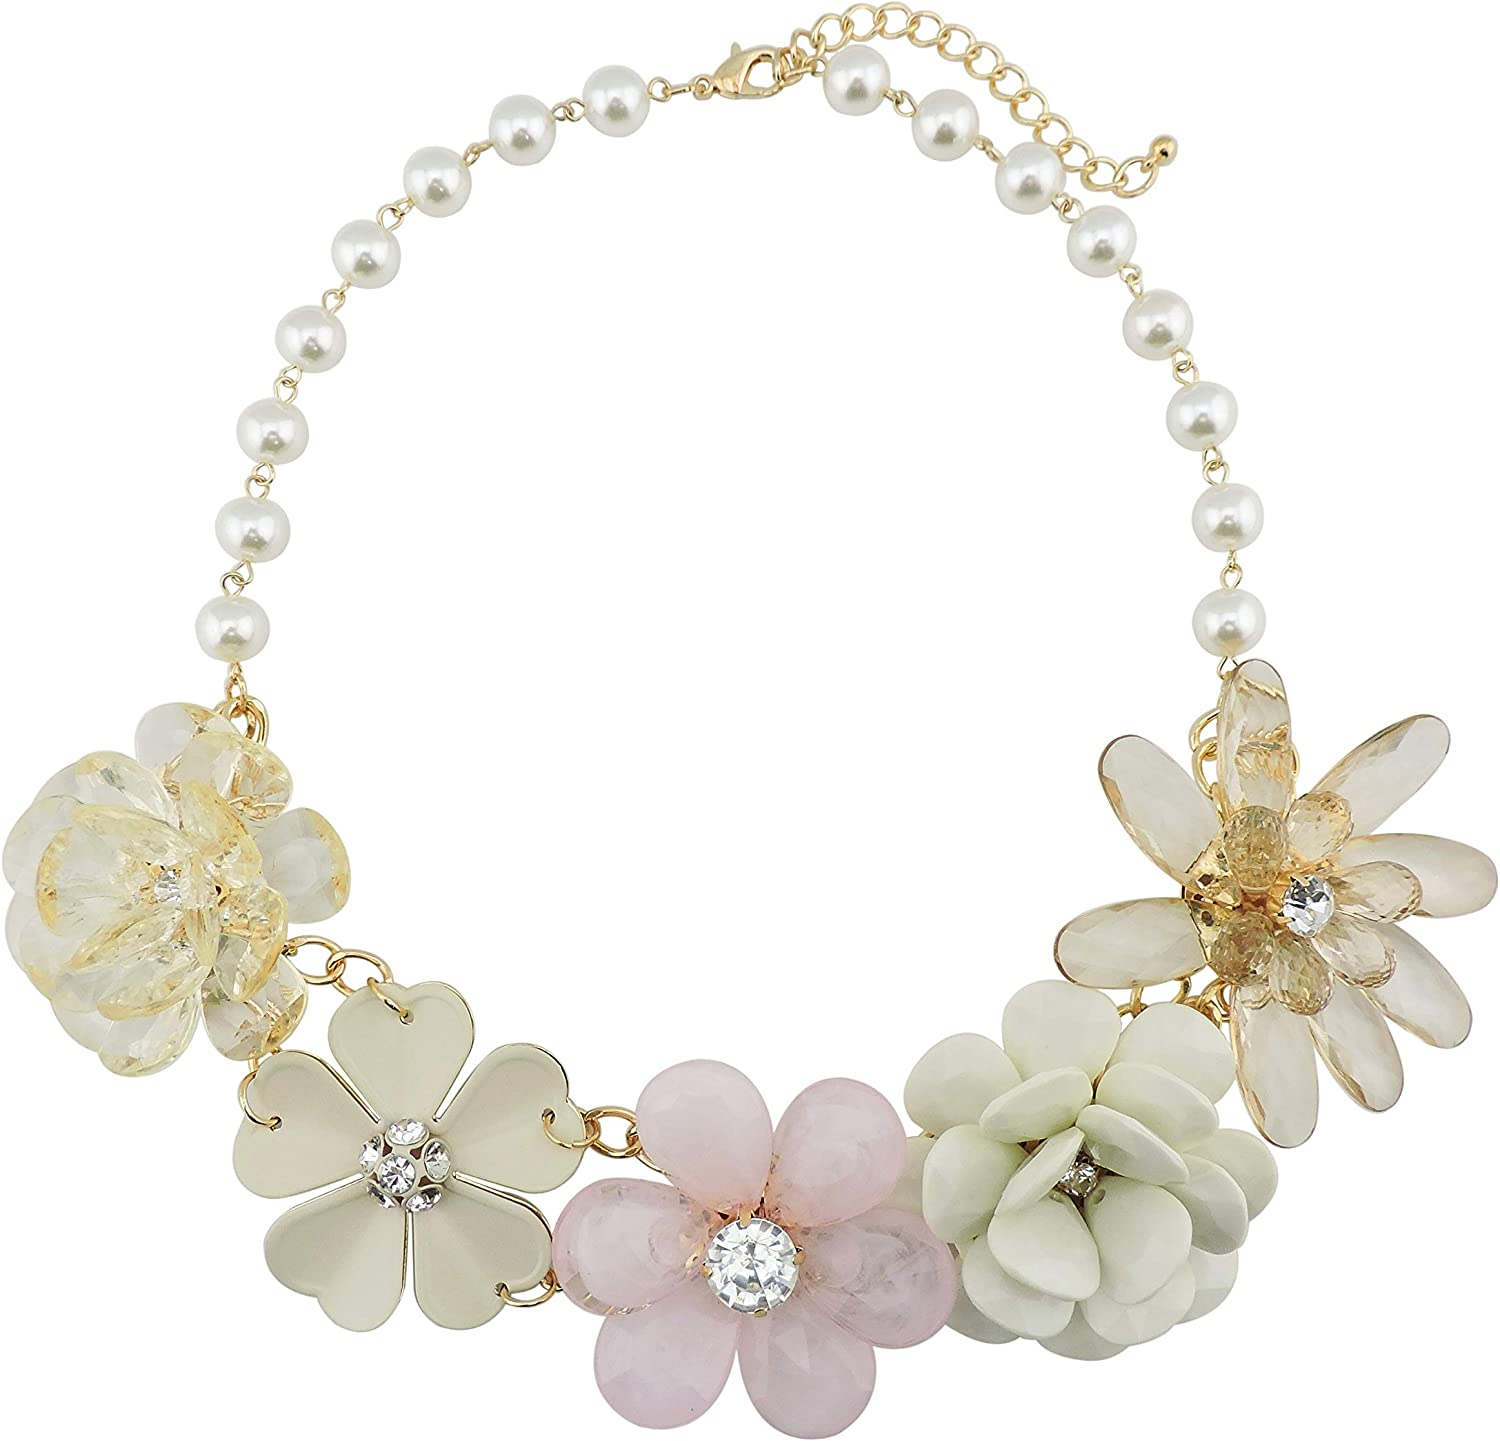 Bocar 5 Flower Braided Crystal Statement Chunky Necklace Bib Collar Pearl Jewelry for Women